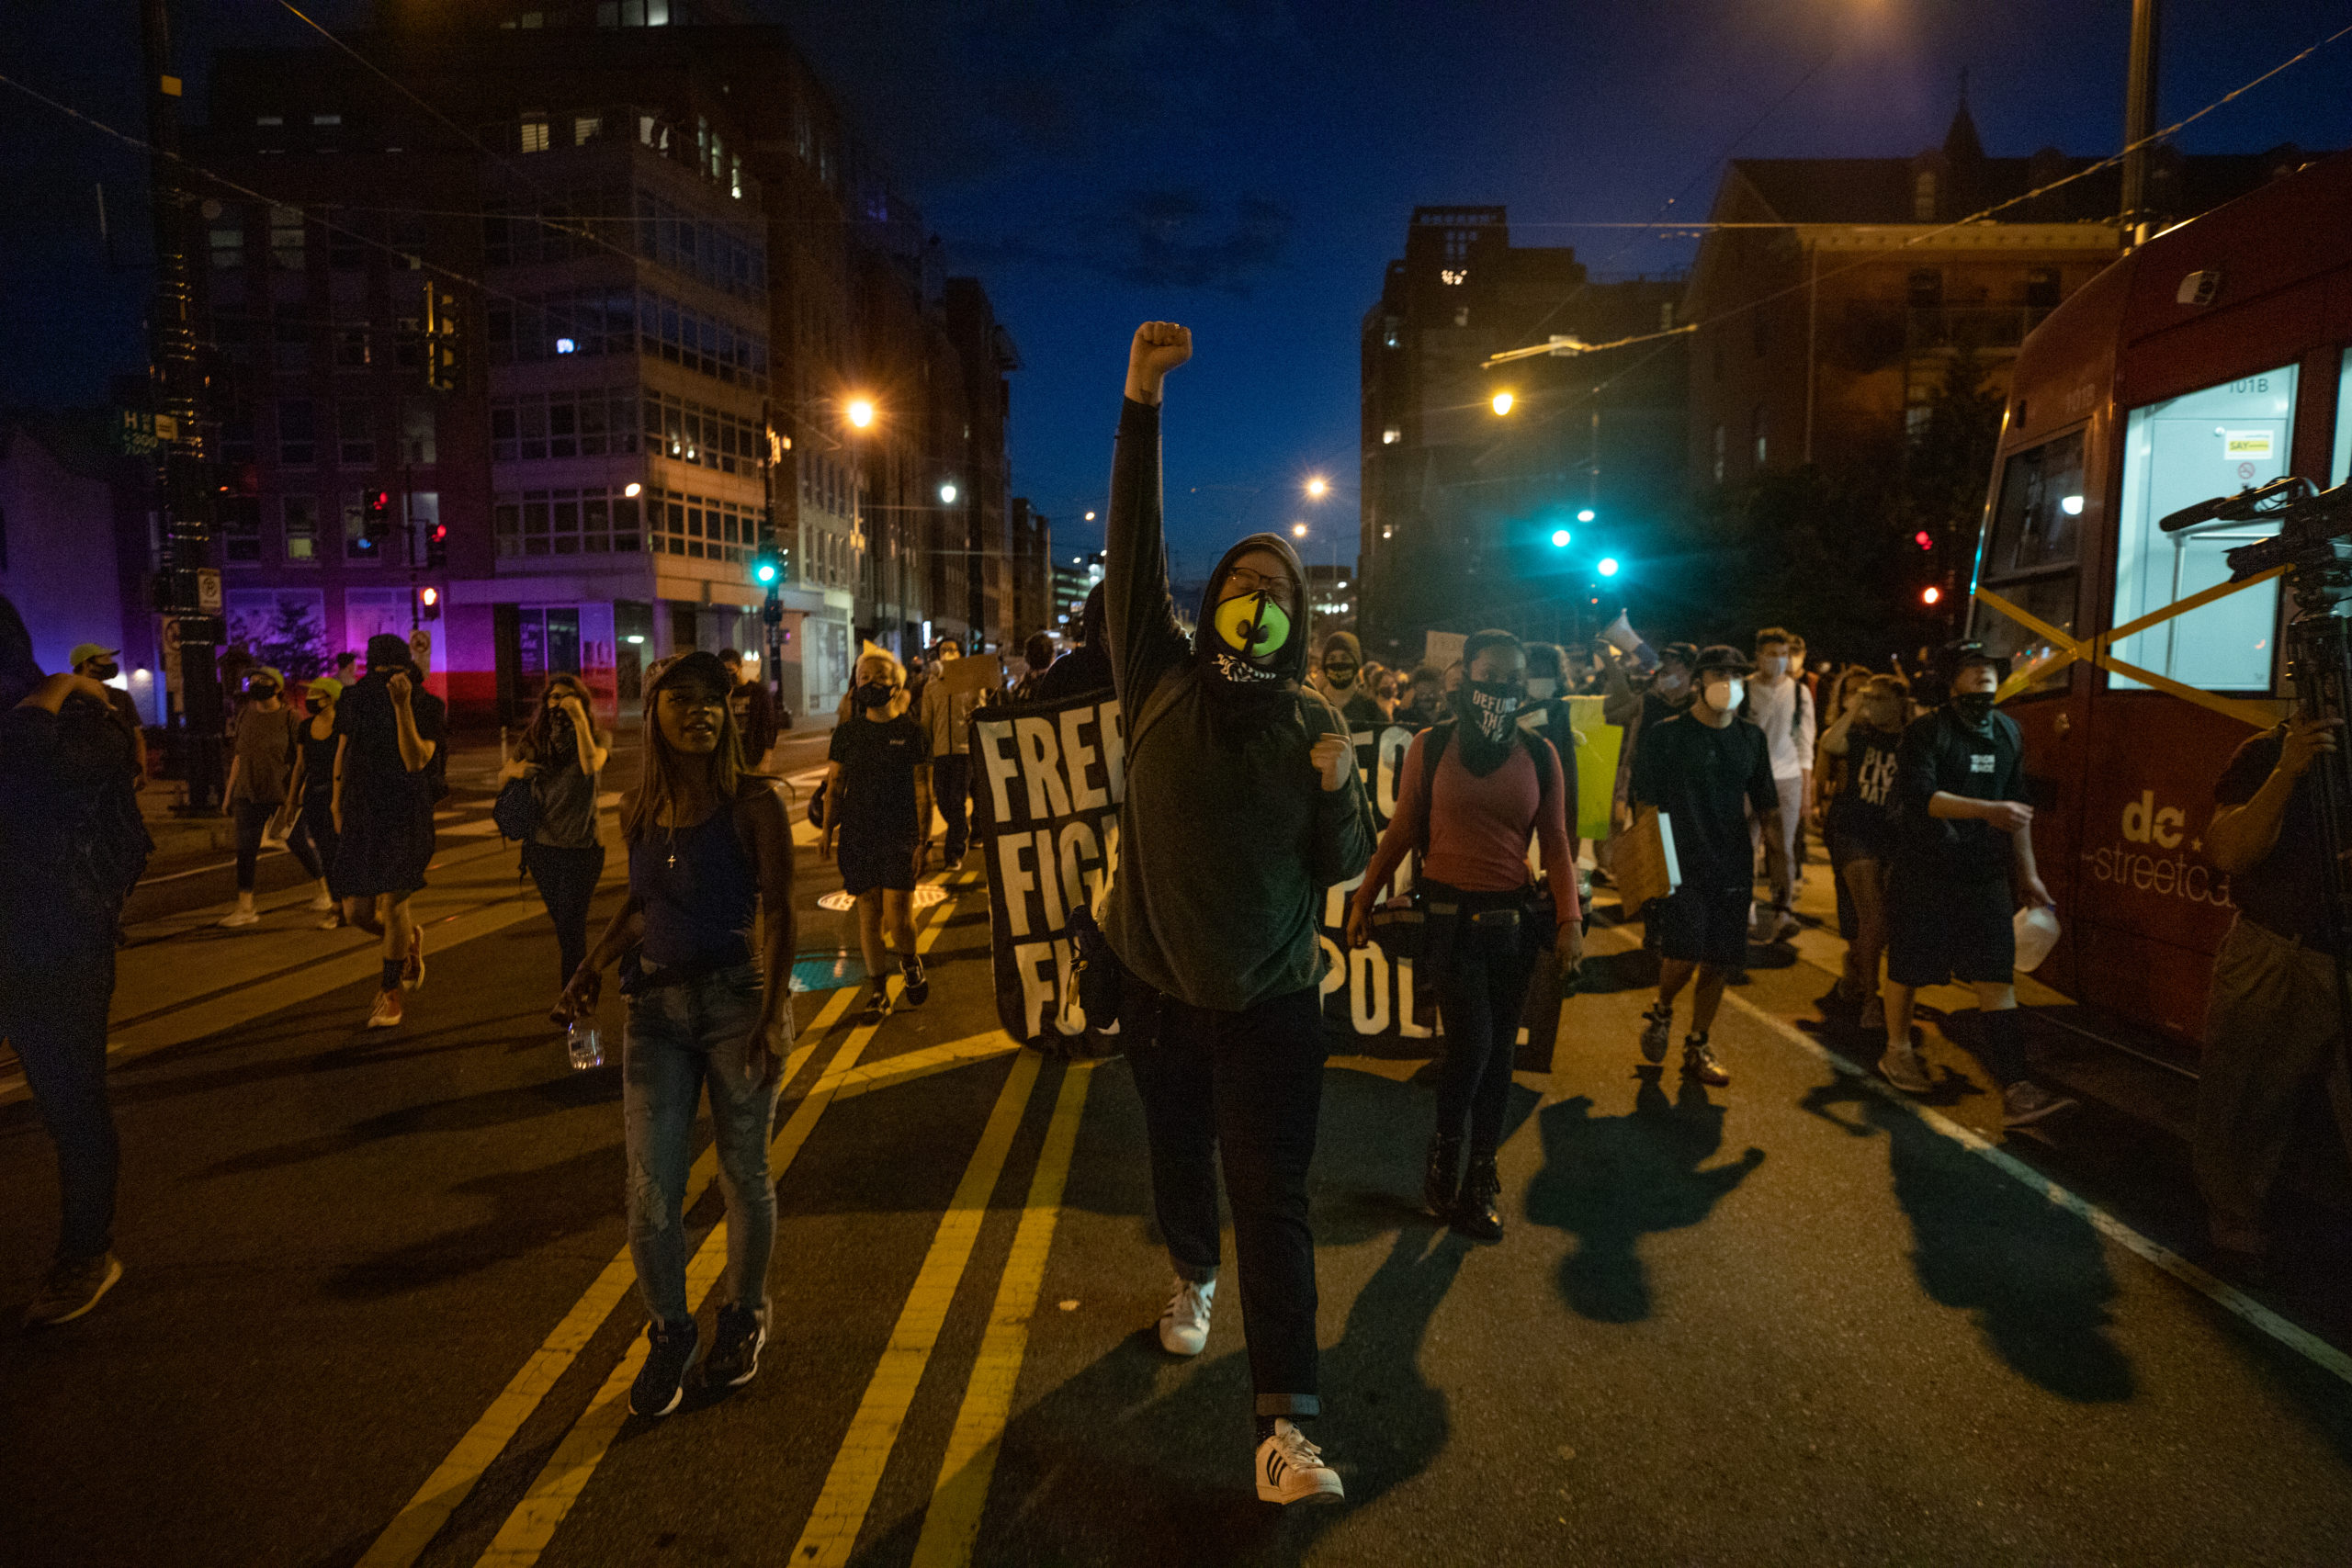 Protesters march on H street in Washington, D.C. on June 25, 2020. (Kaylee Greenlee - DCNF)